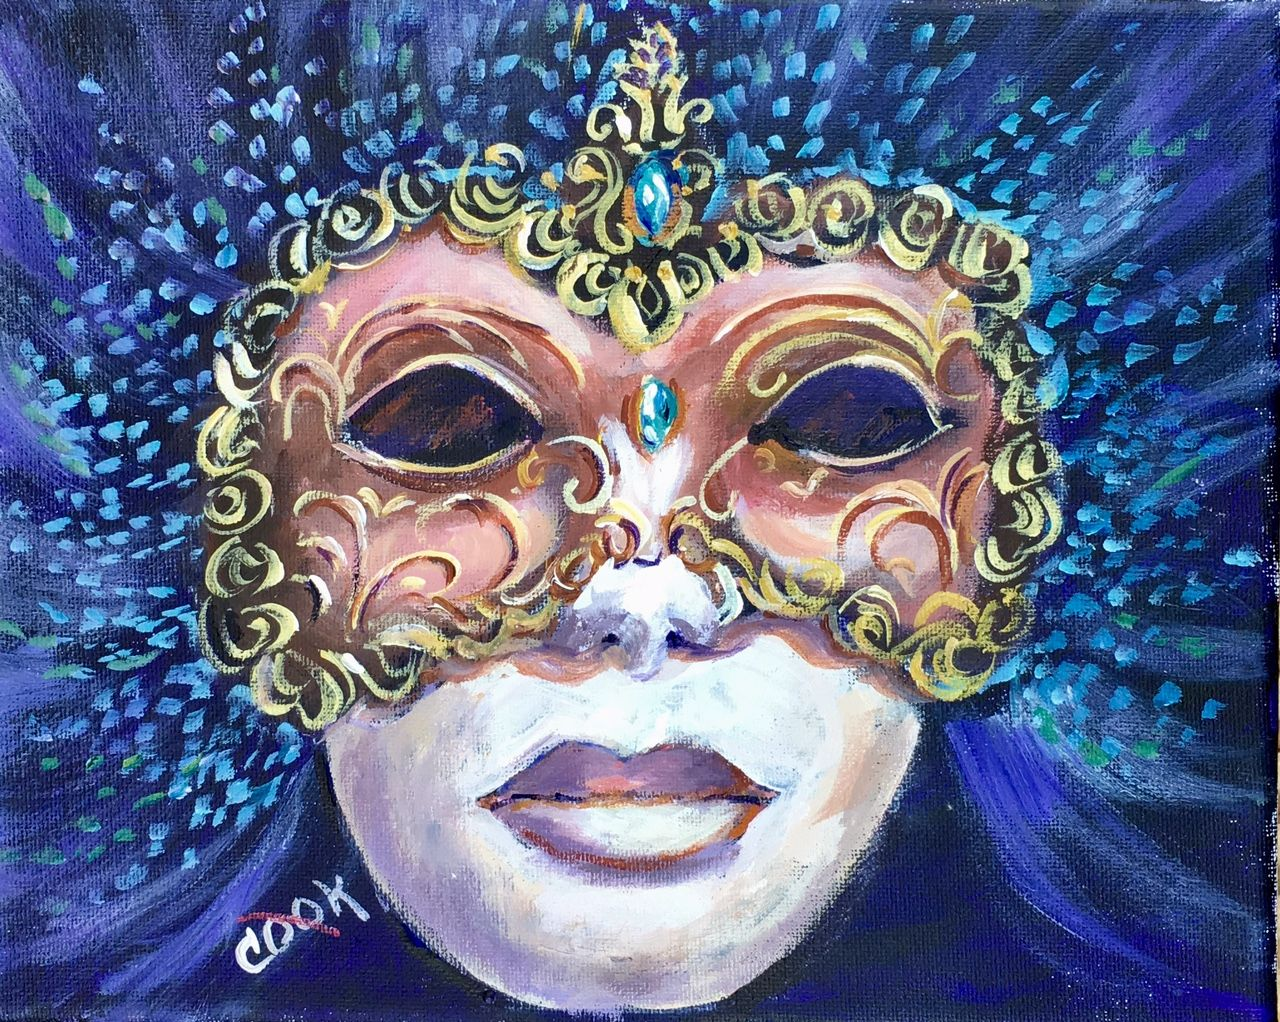 Mardi Gras Mask in Blue was created for our YouTube